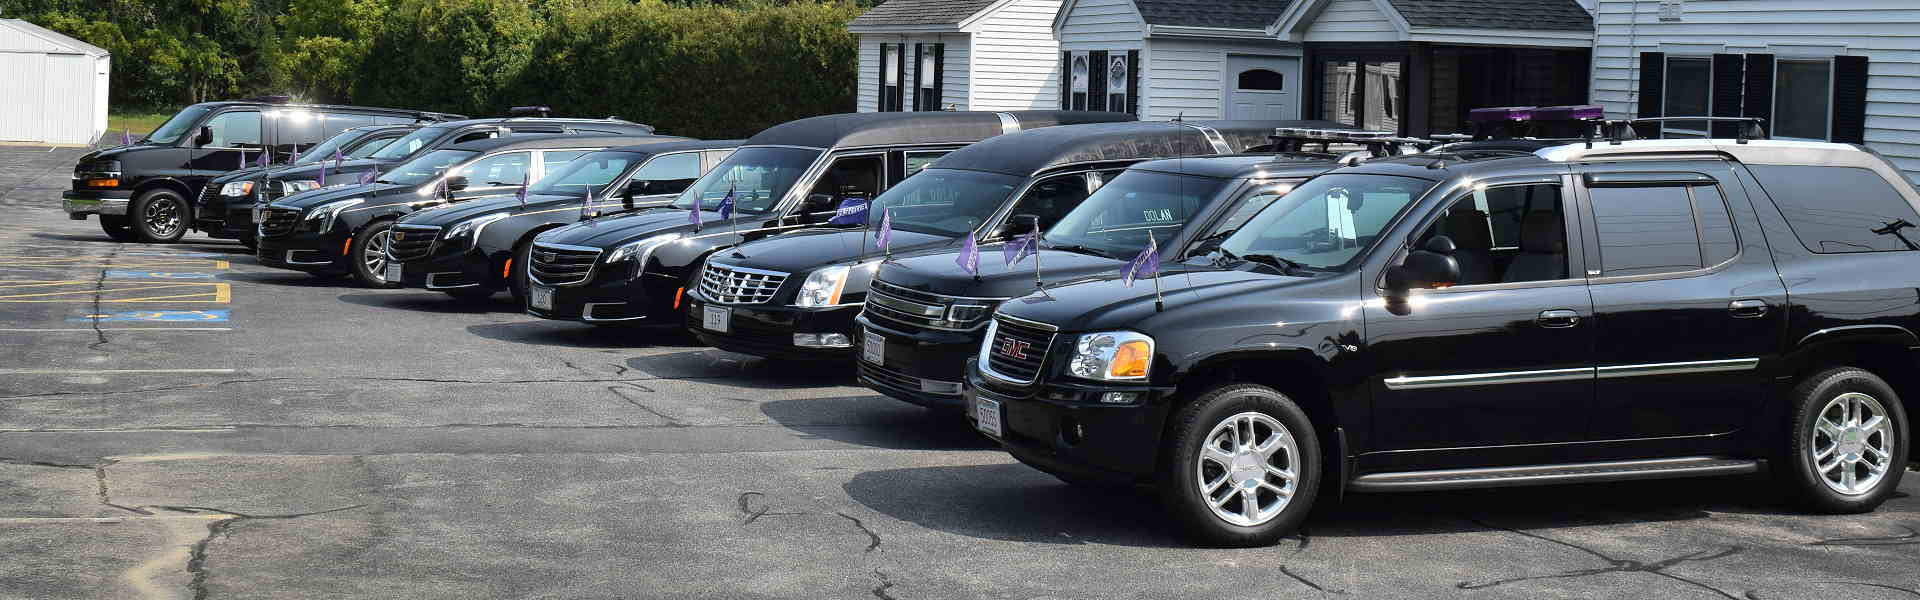 dolan hearses funeral home and cremations tyngsboro ma